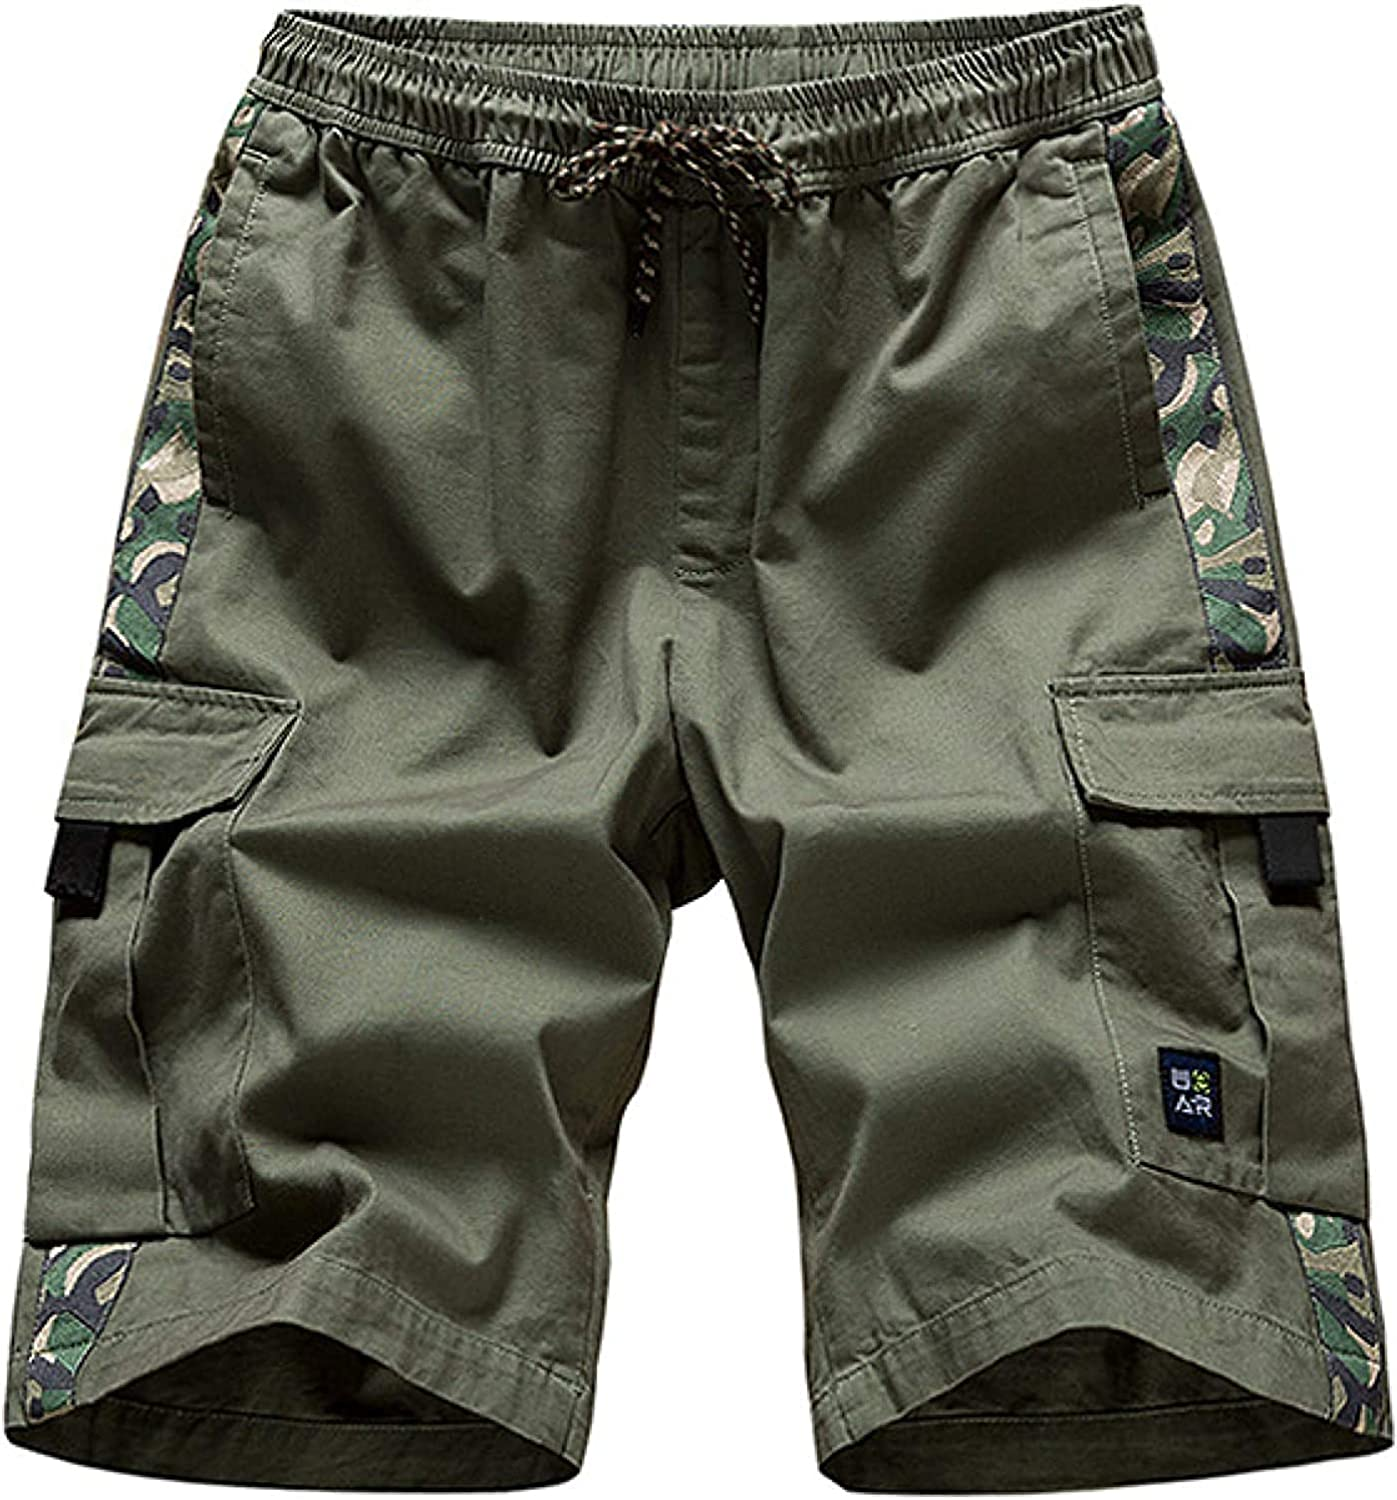 GHJX Men's Cargo Shorts Large Size Stitching Patchwork Trend Streetwear Personality Green